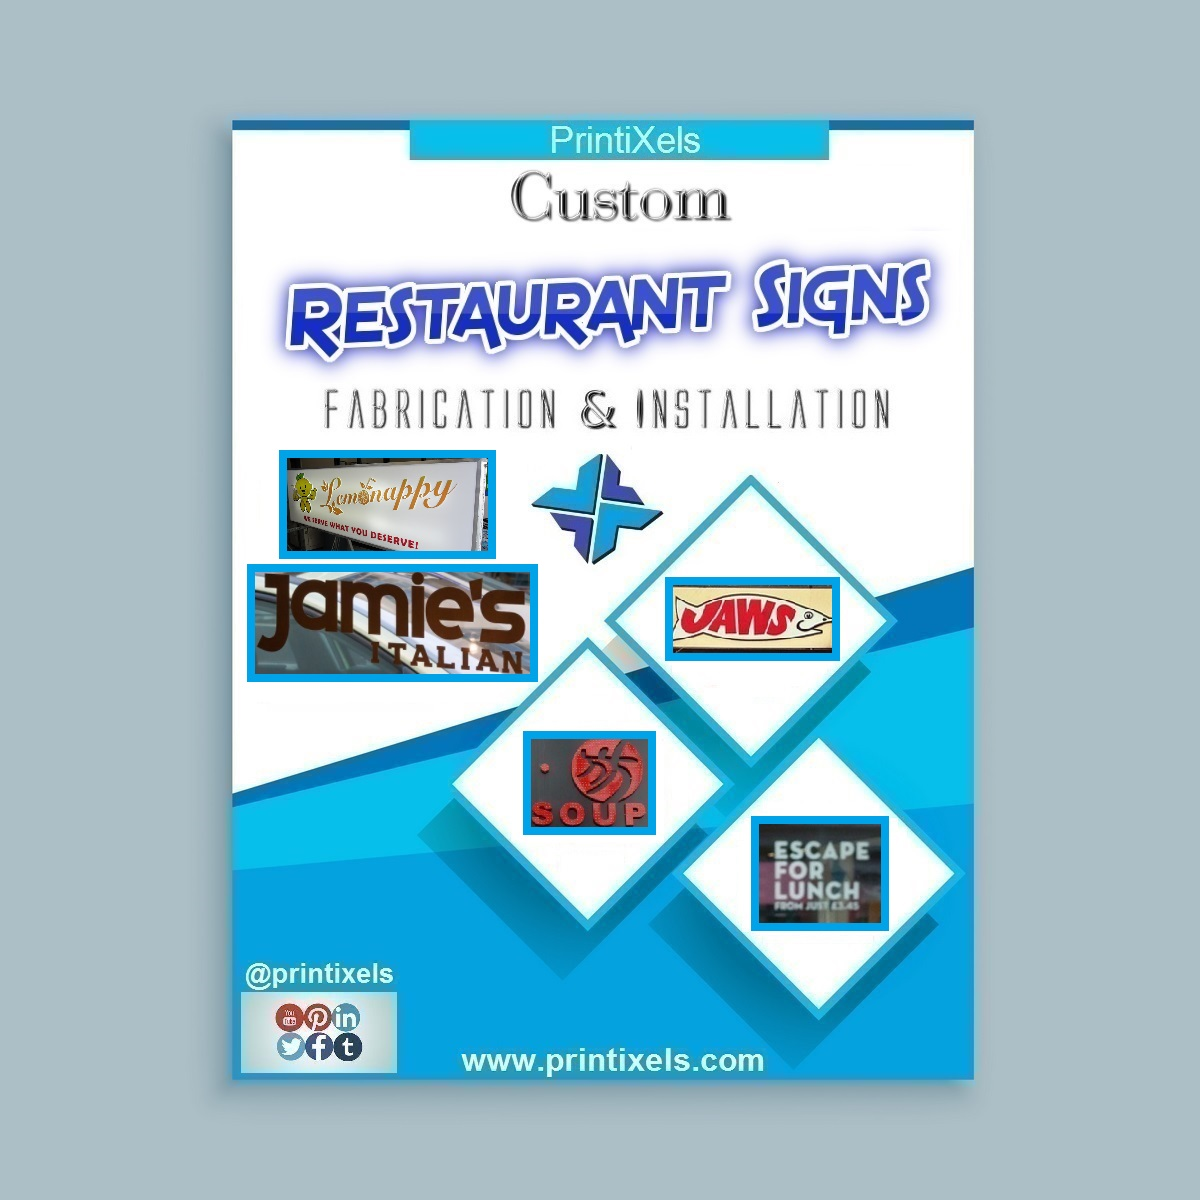 Custom Restaurant Signs - Fabrication & Installation